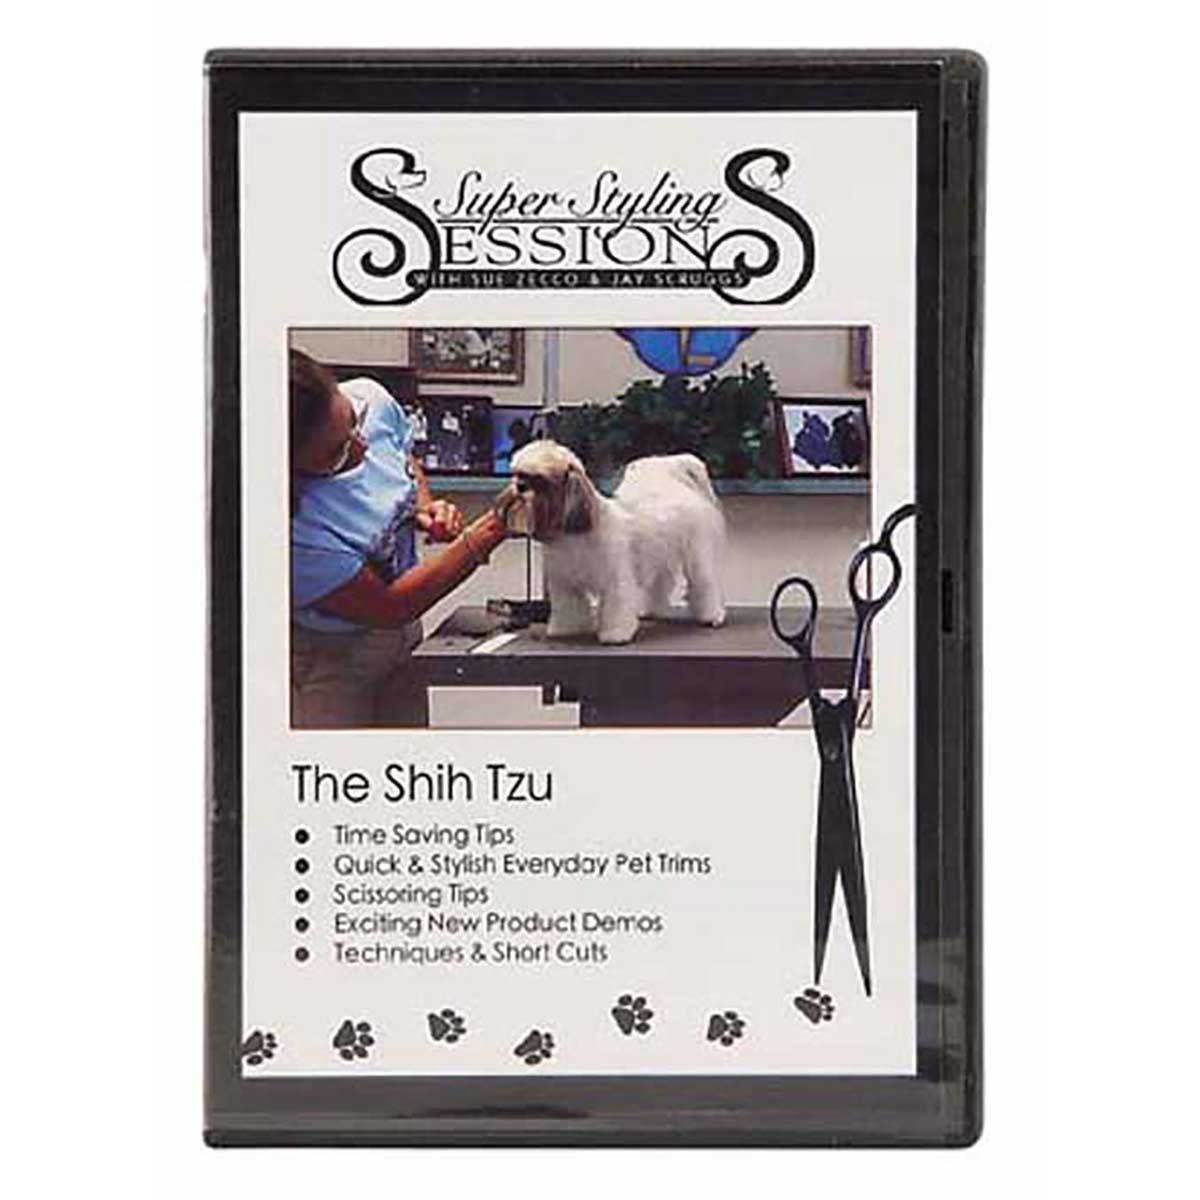 Super Styling Sessions - Shih Tzu Grooming DVD